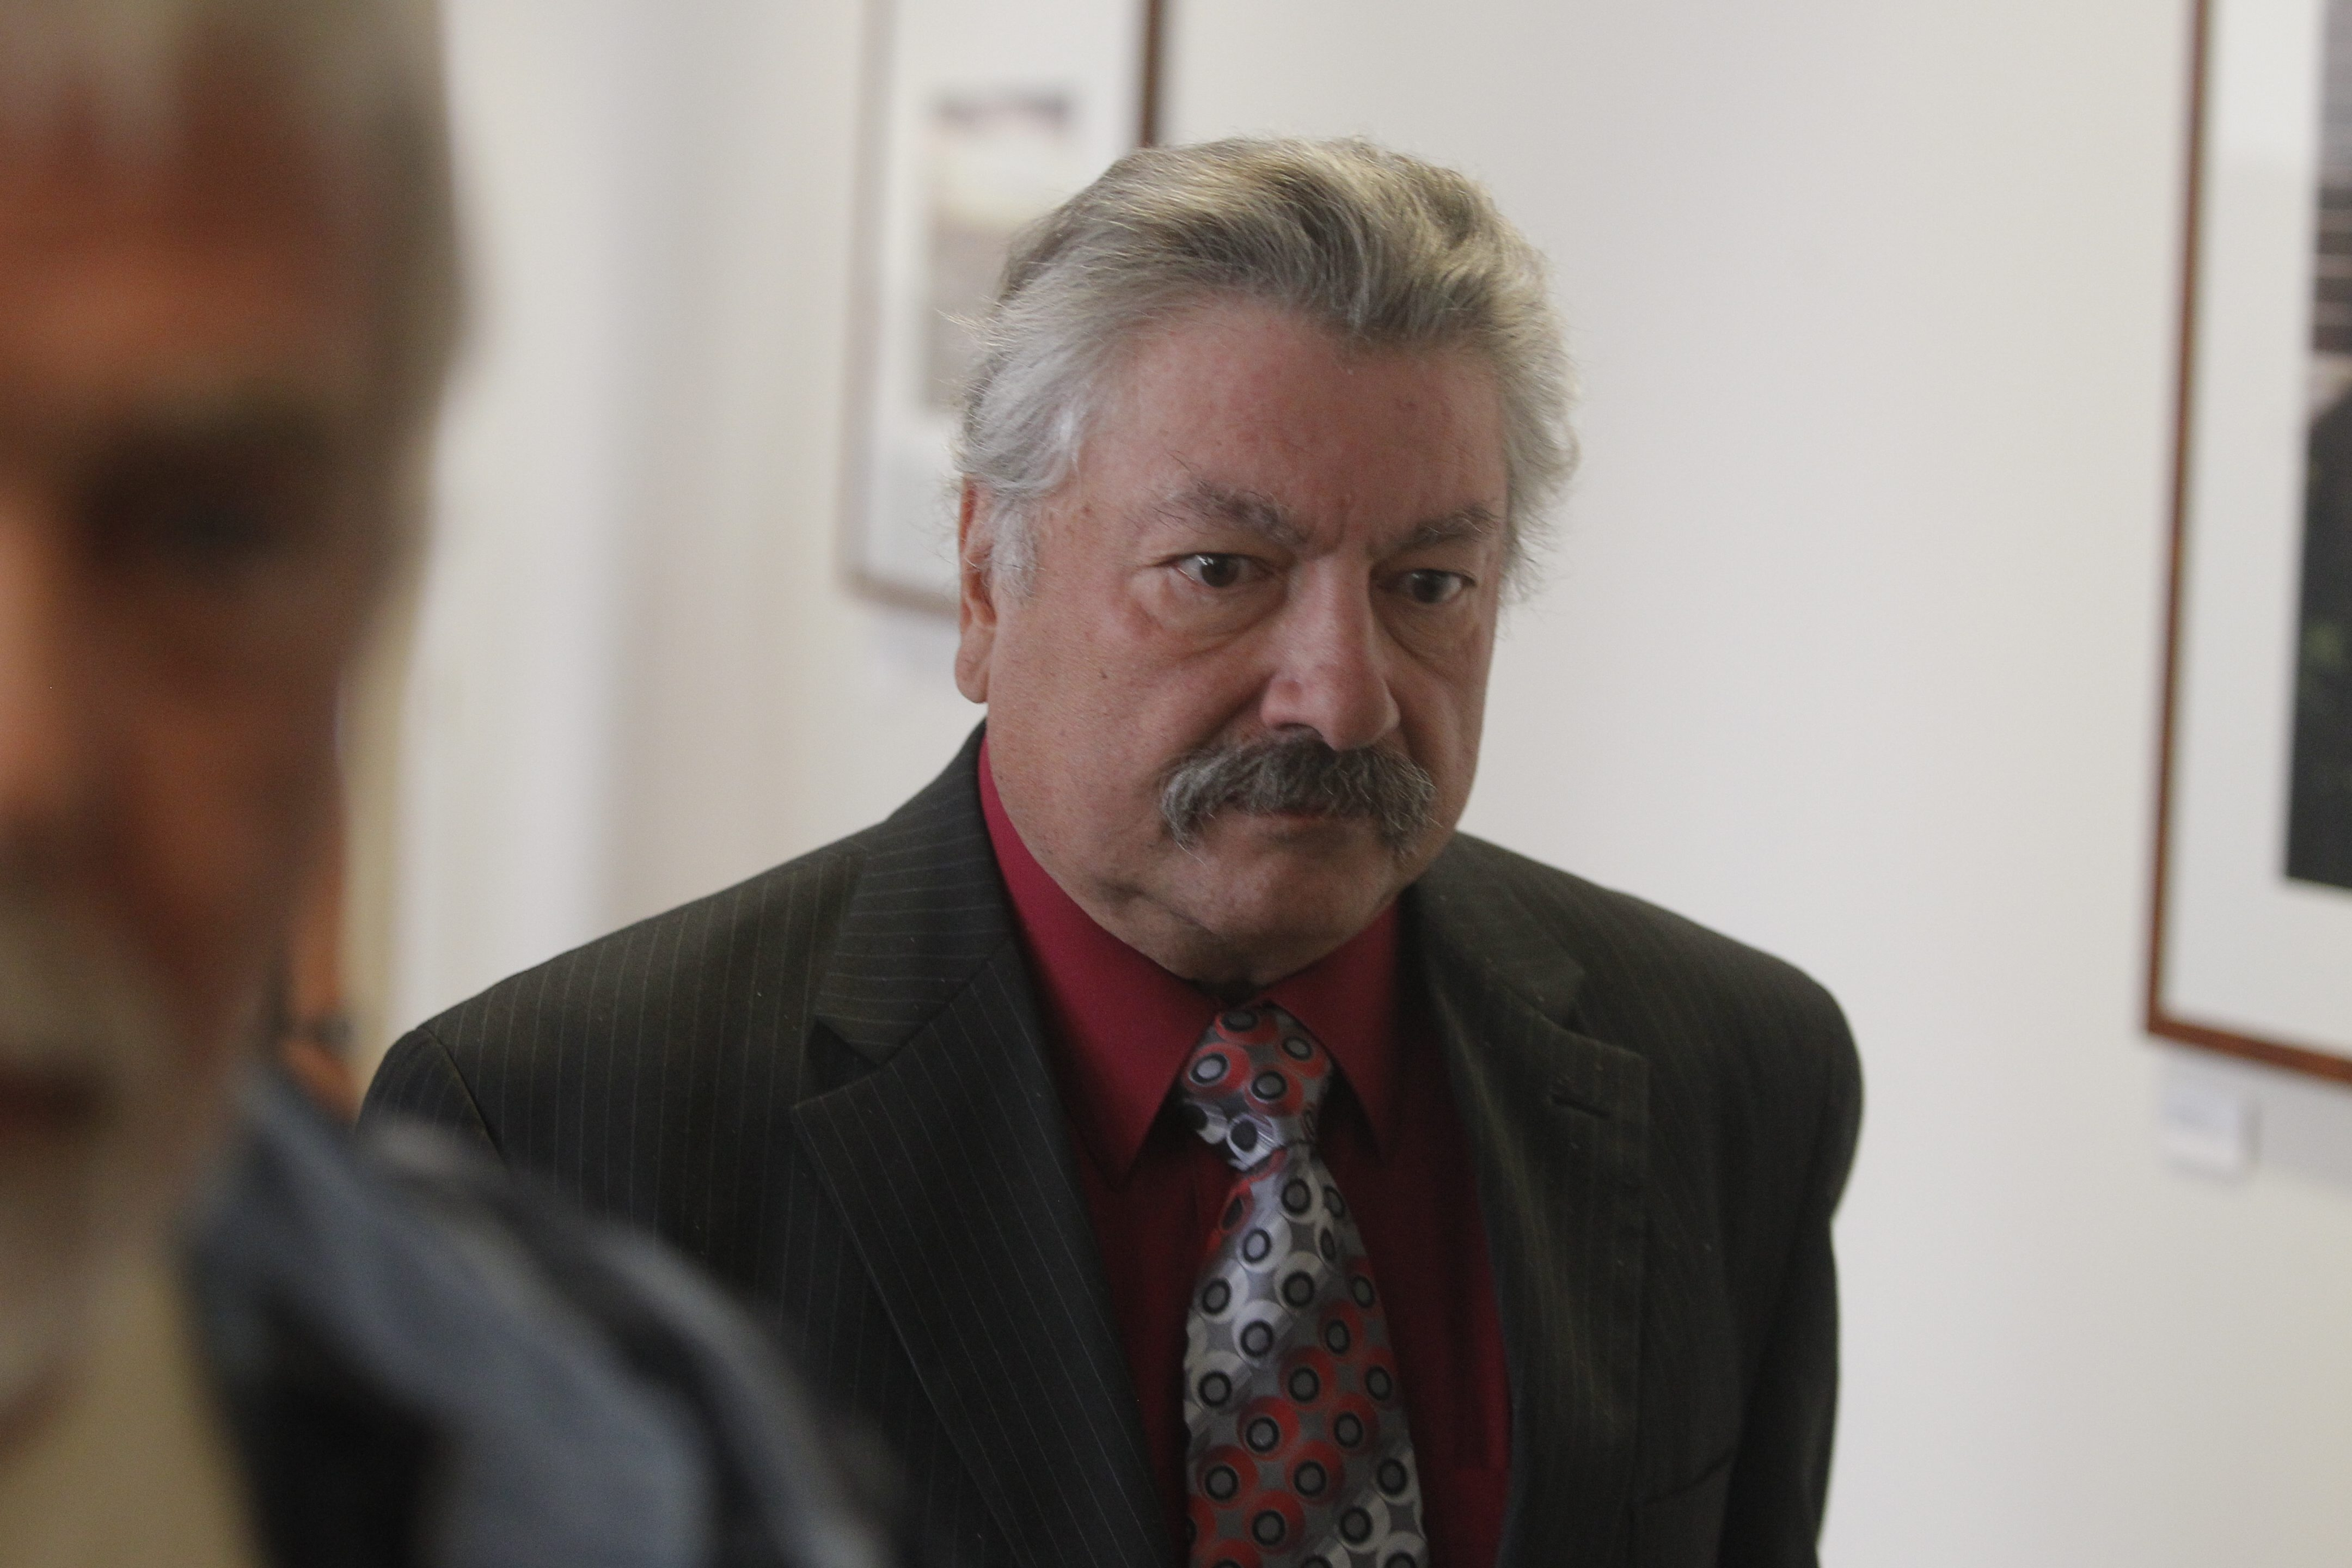 Robert Styn was spared jail time in Nov. 27 crash that killed Daniel S. McParlane, chairman of the West Seneca Democratic Committee. McParlane's car struck an icy patch and crossed into Styn's lane. (John Hickey/Buffalo News file photo)